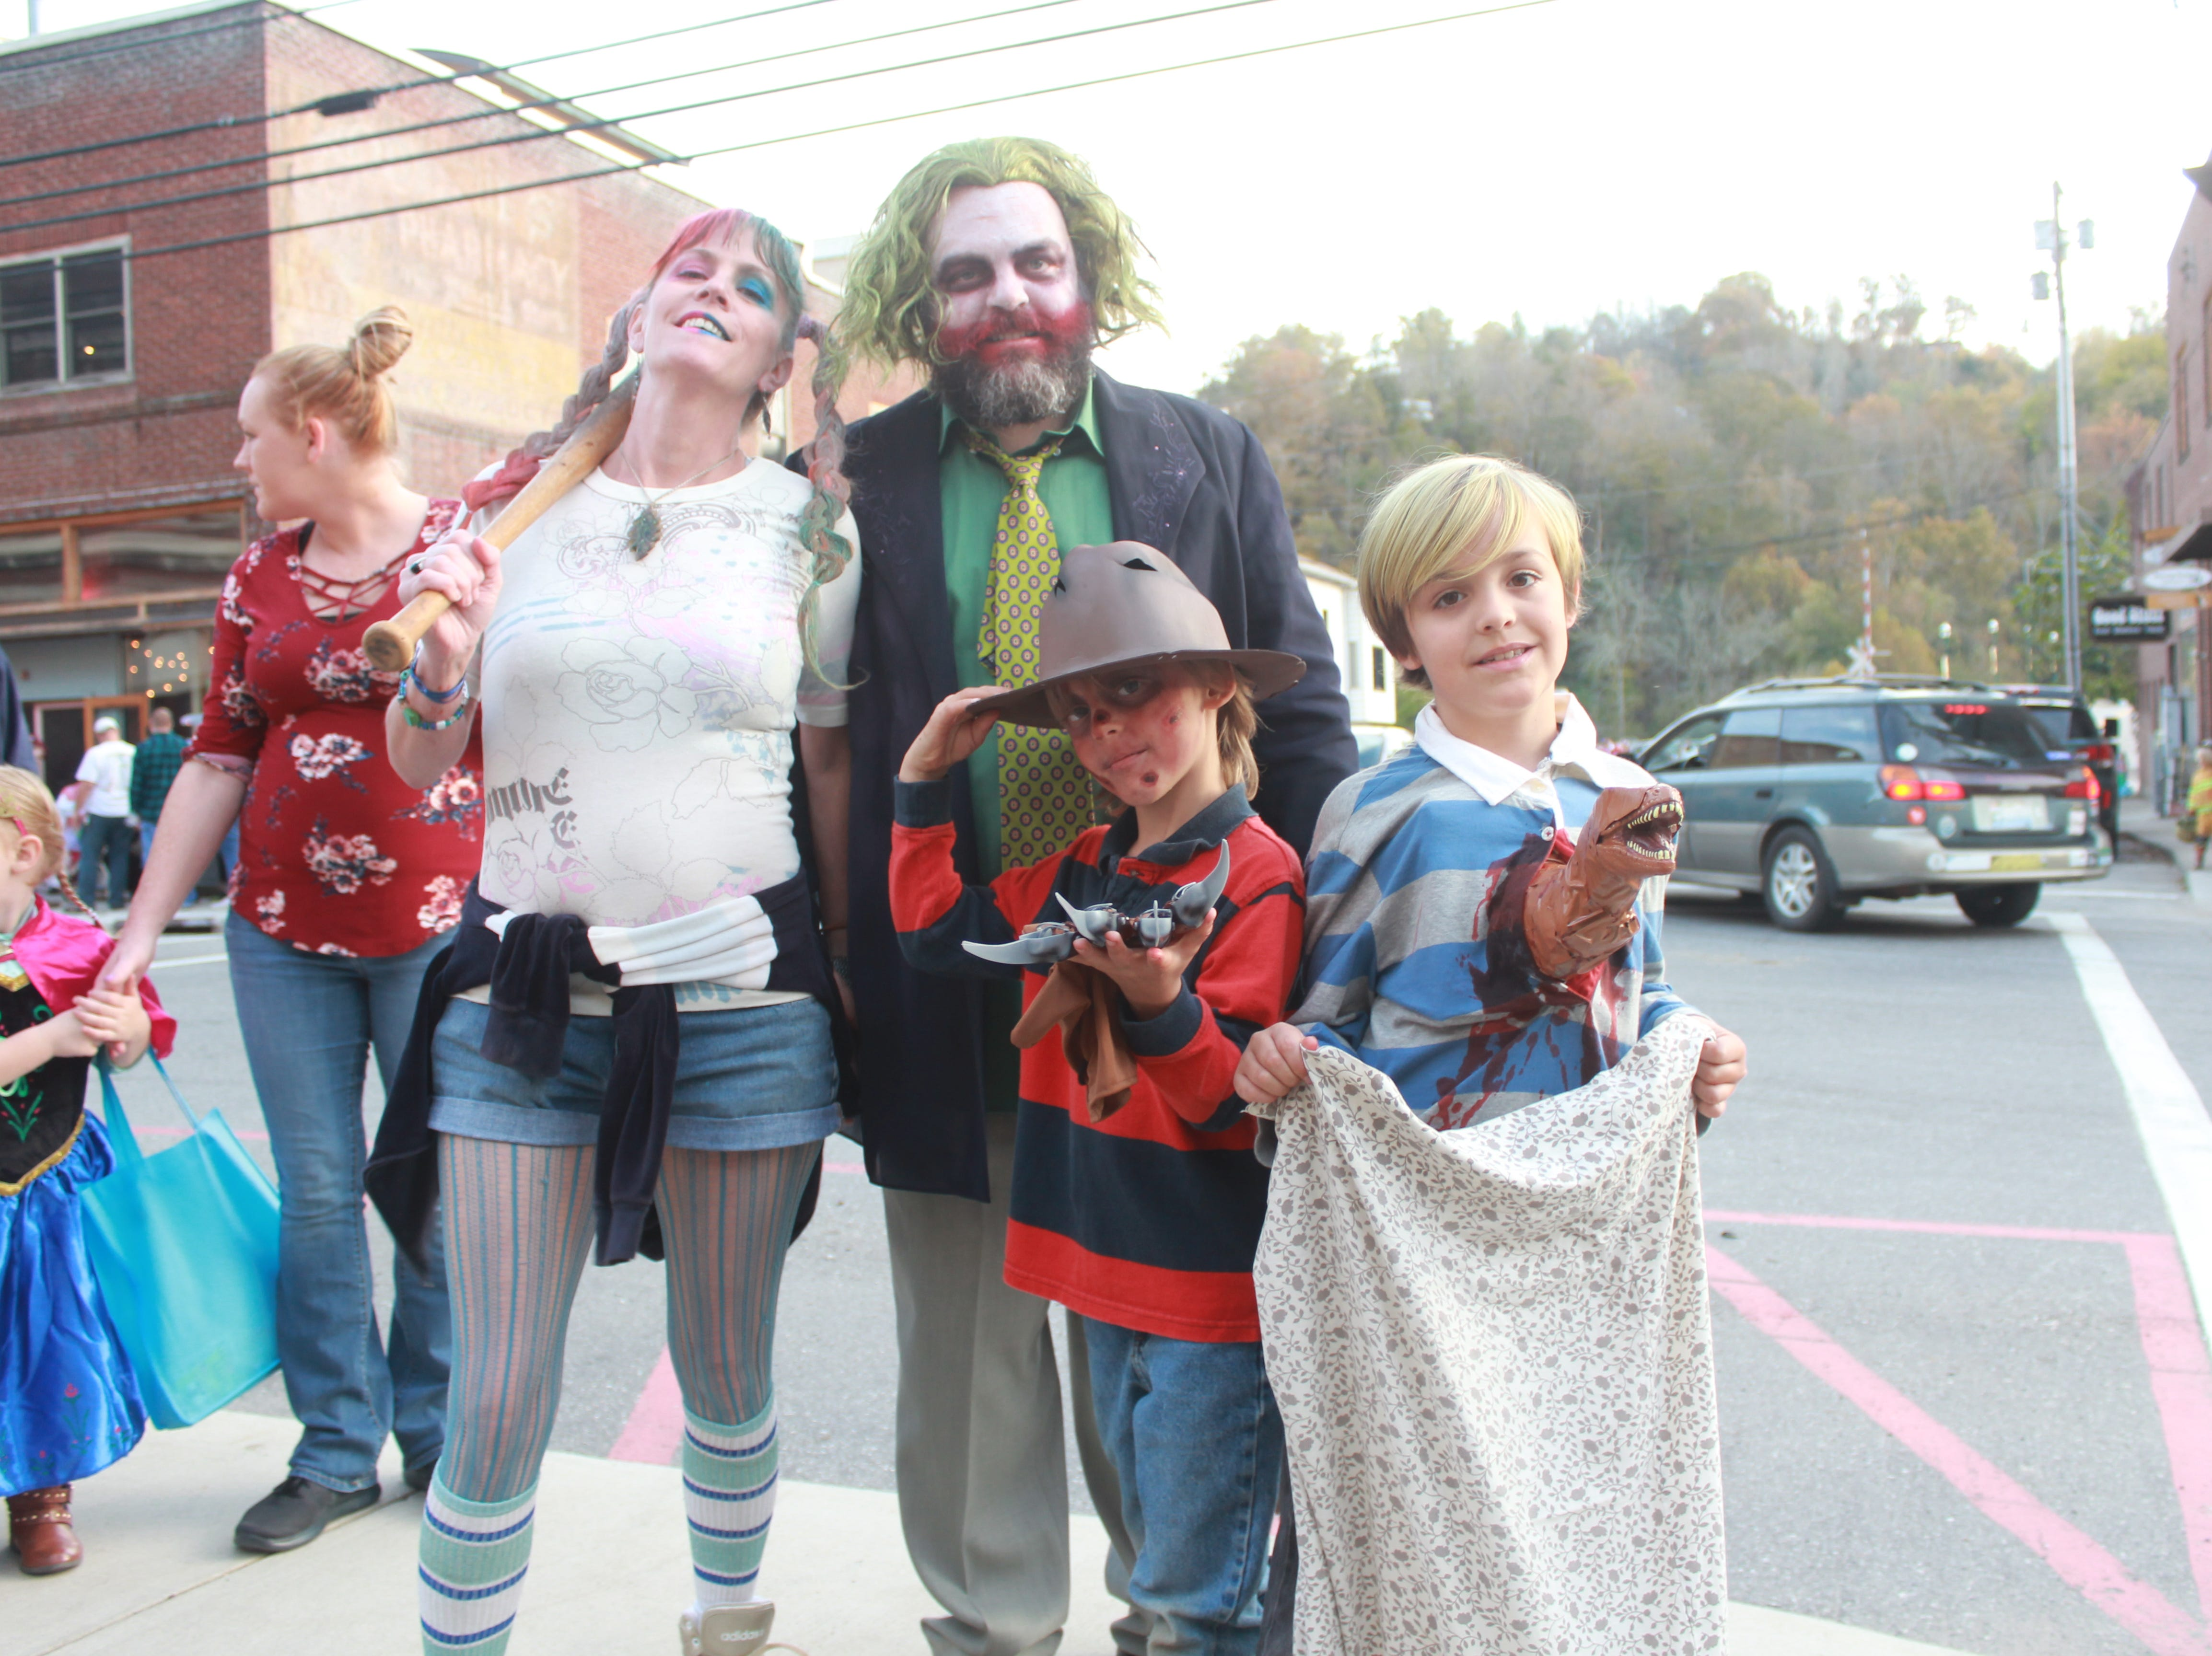 The Wall family - Liesel, Ja, Jericho and Conrad - sported creative costumes for downtown Mrashall halloween festivities.